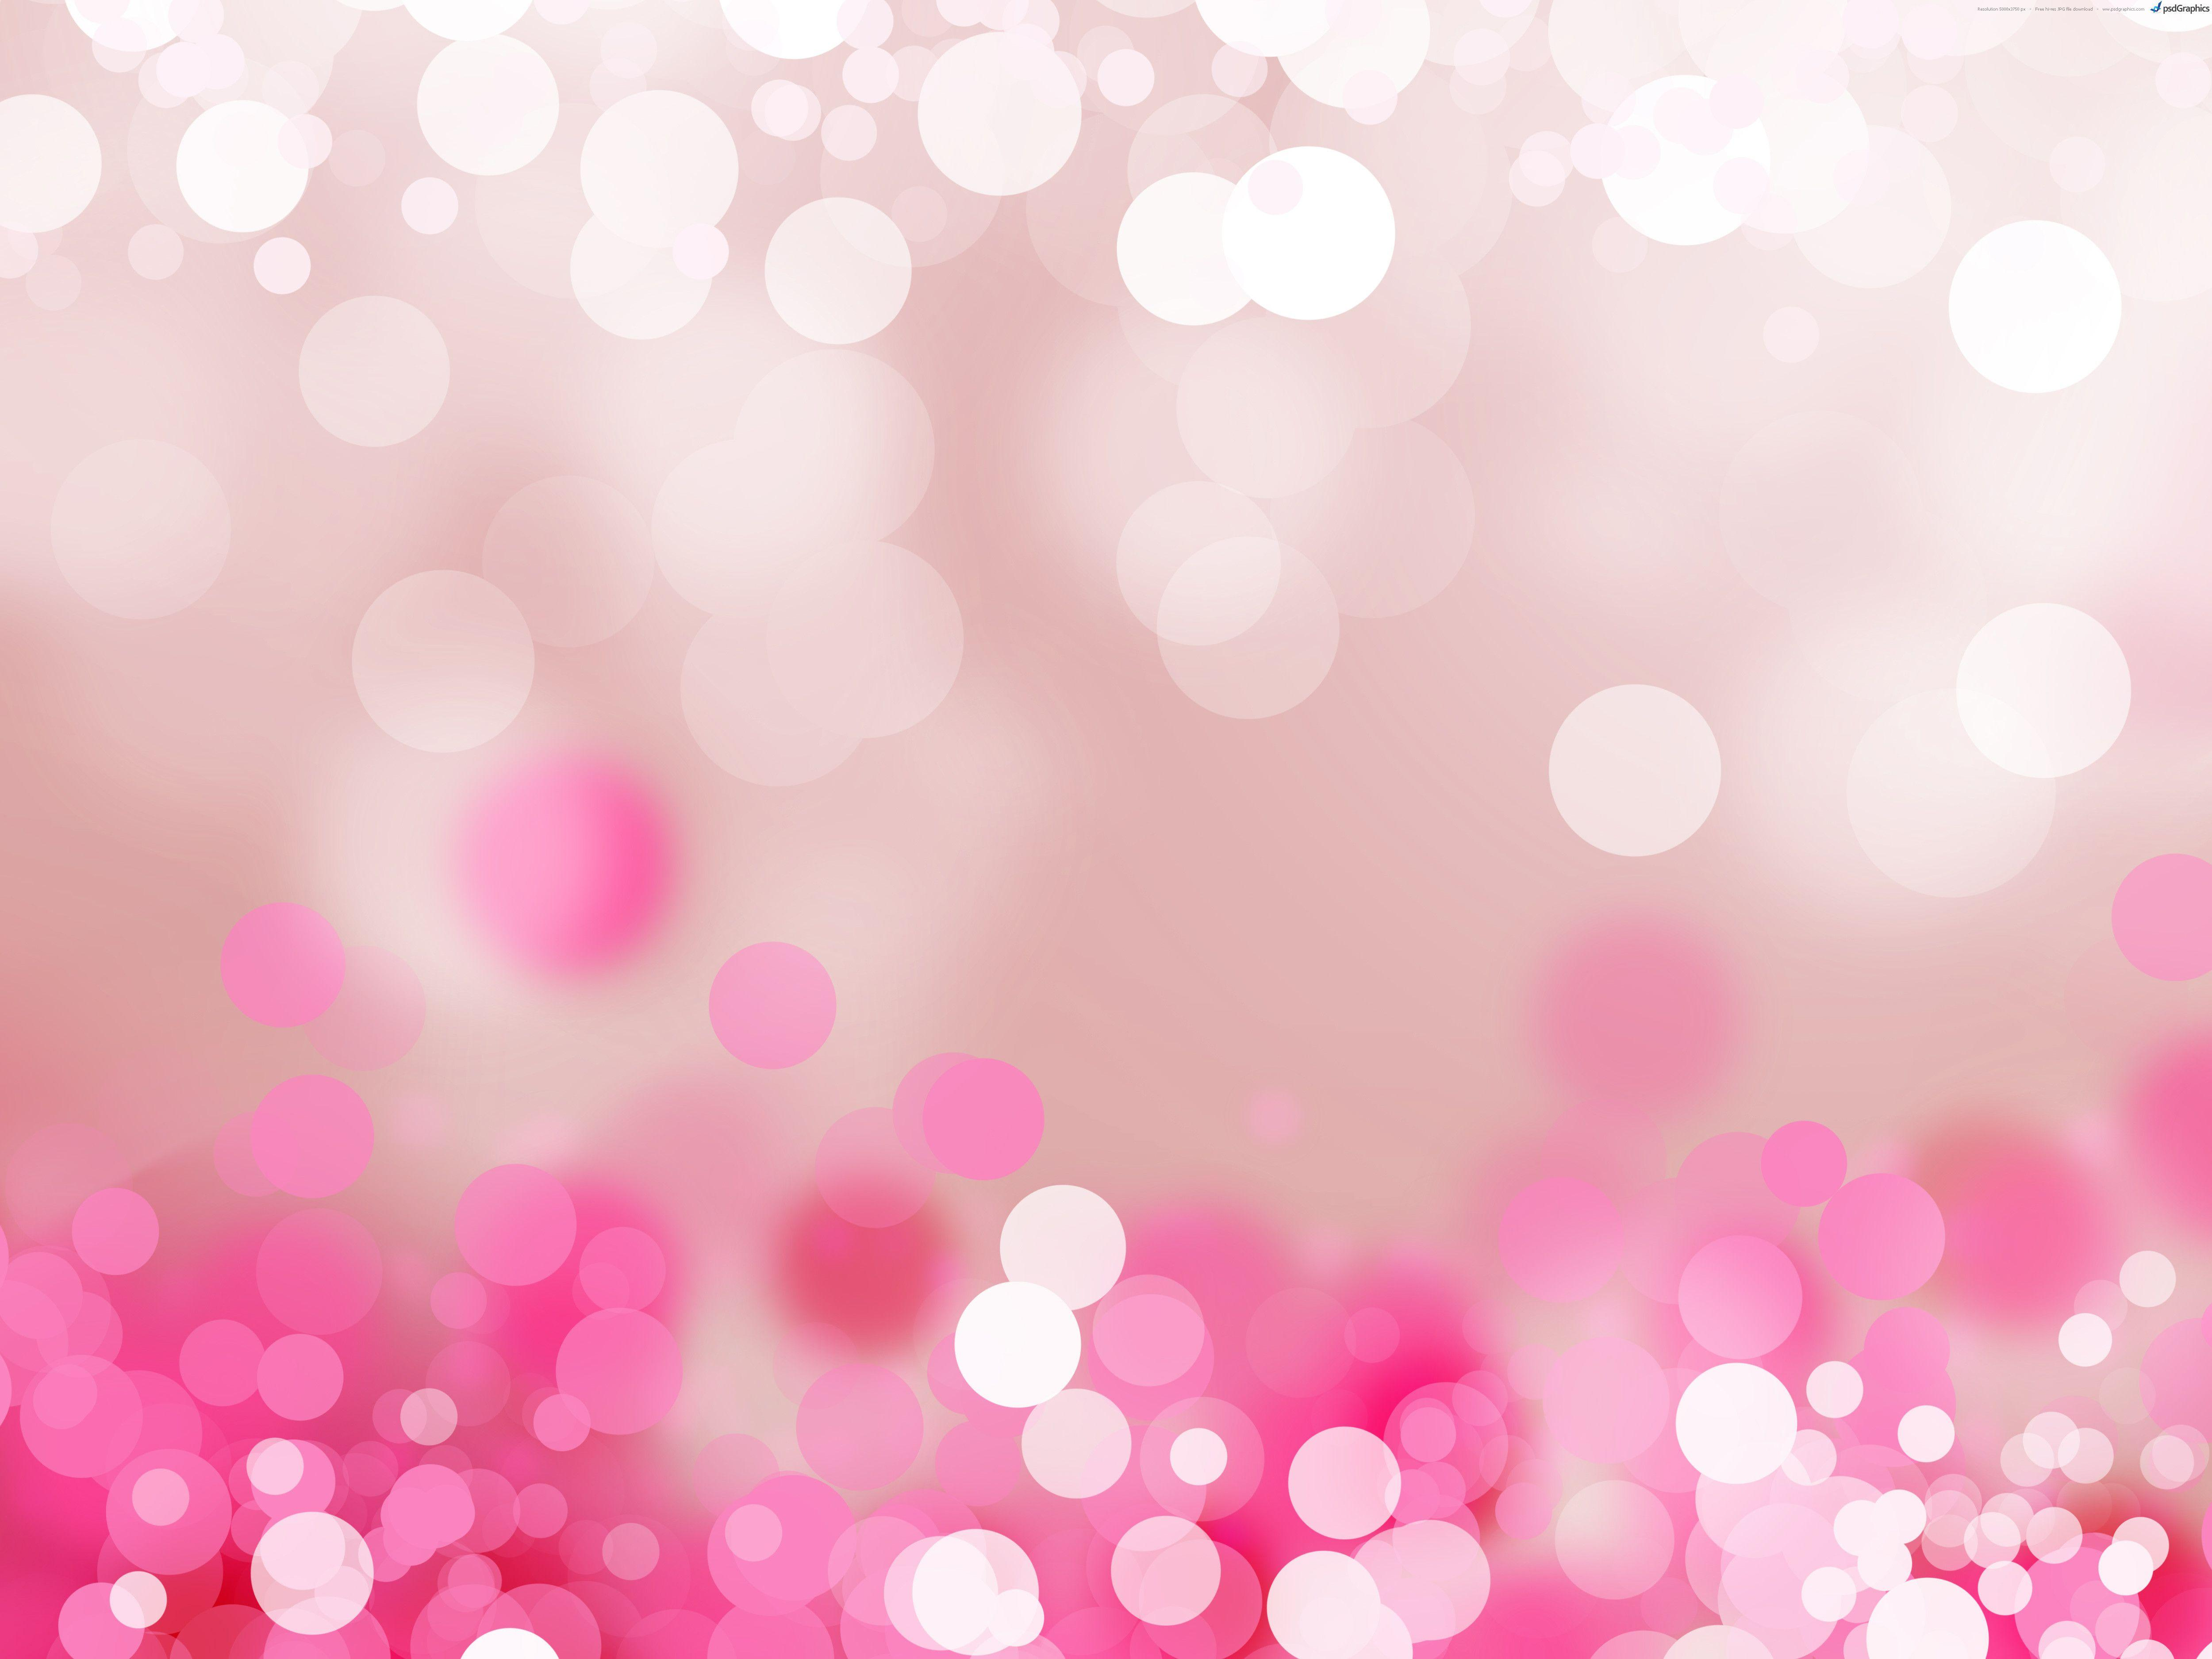 Light Pink Backgrounds 5000x3750